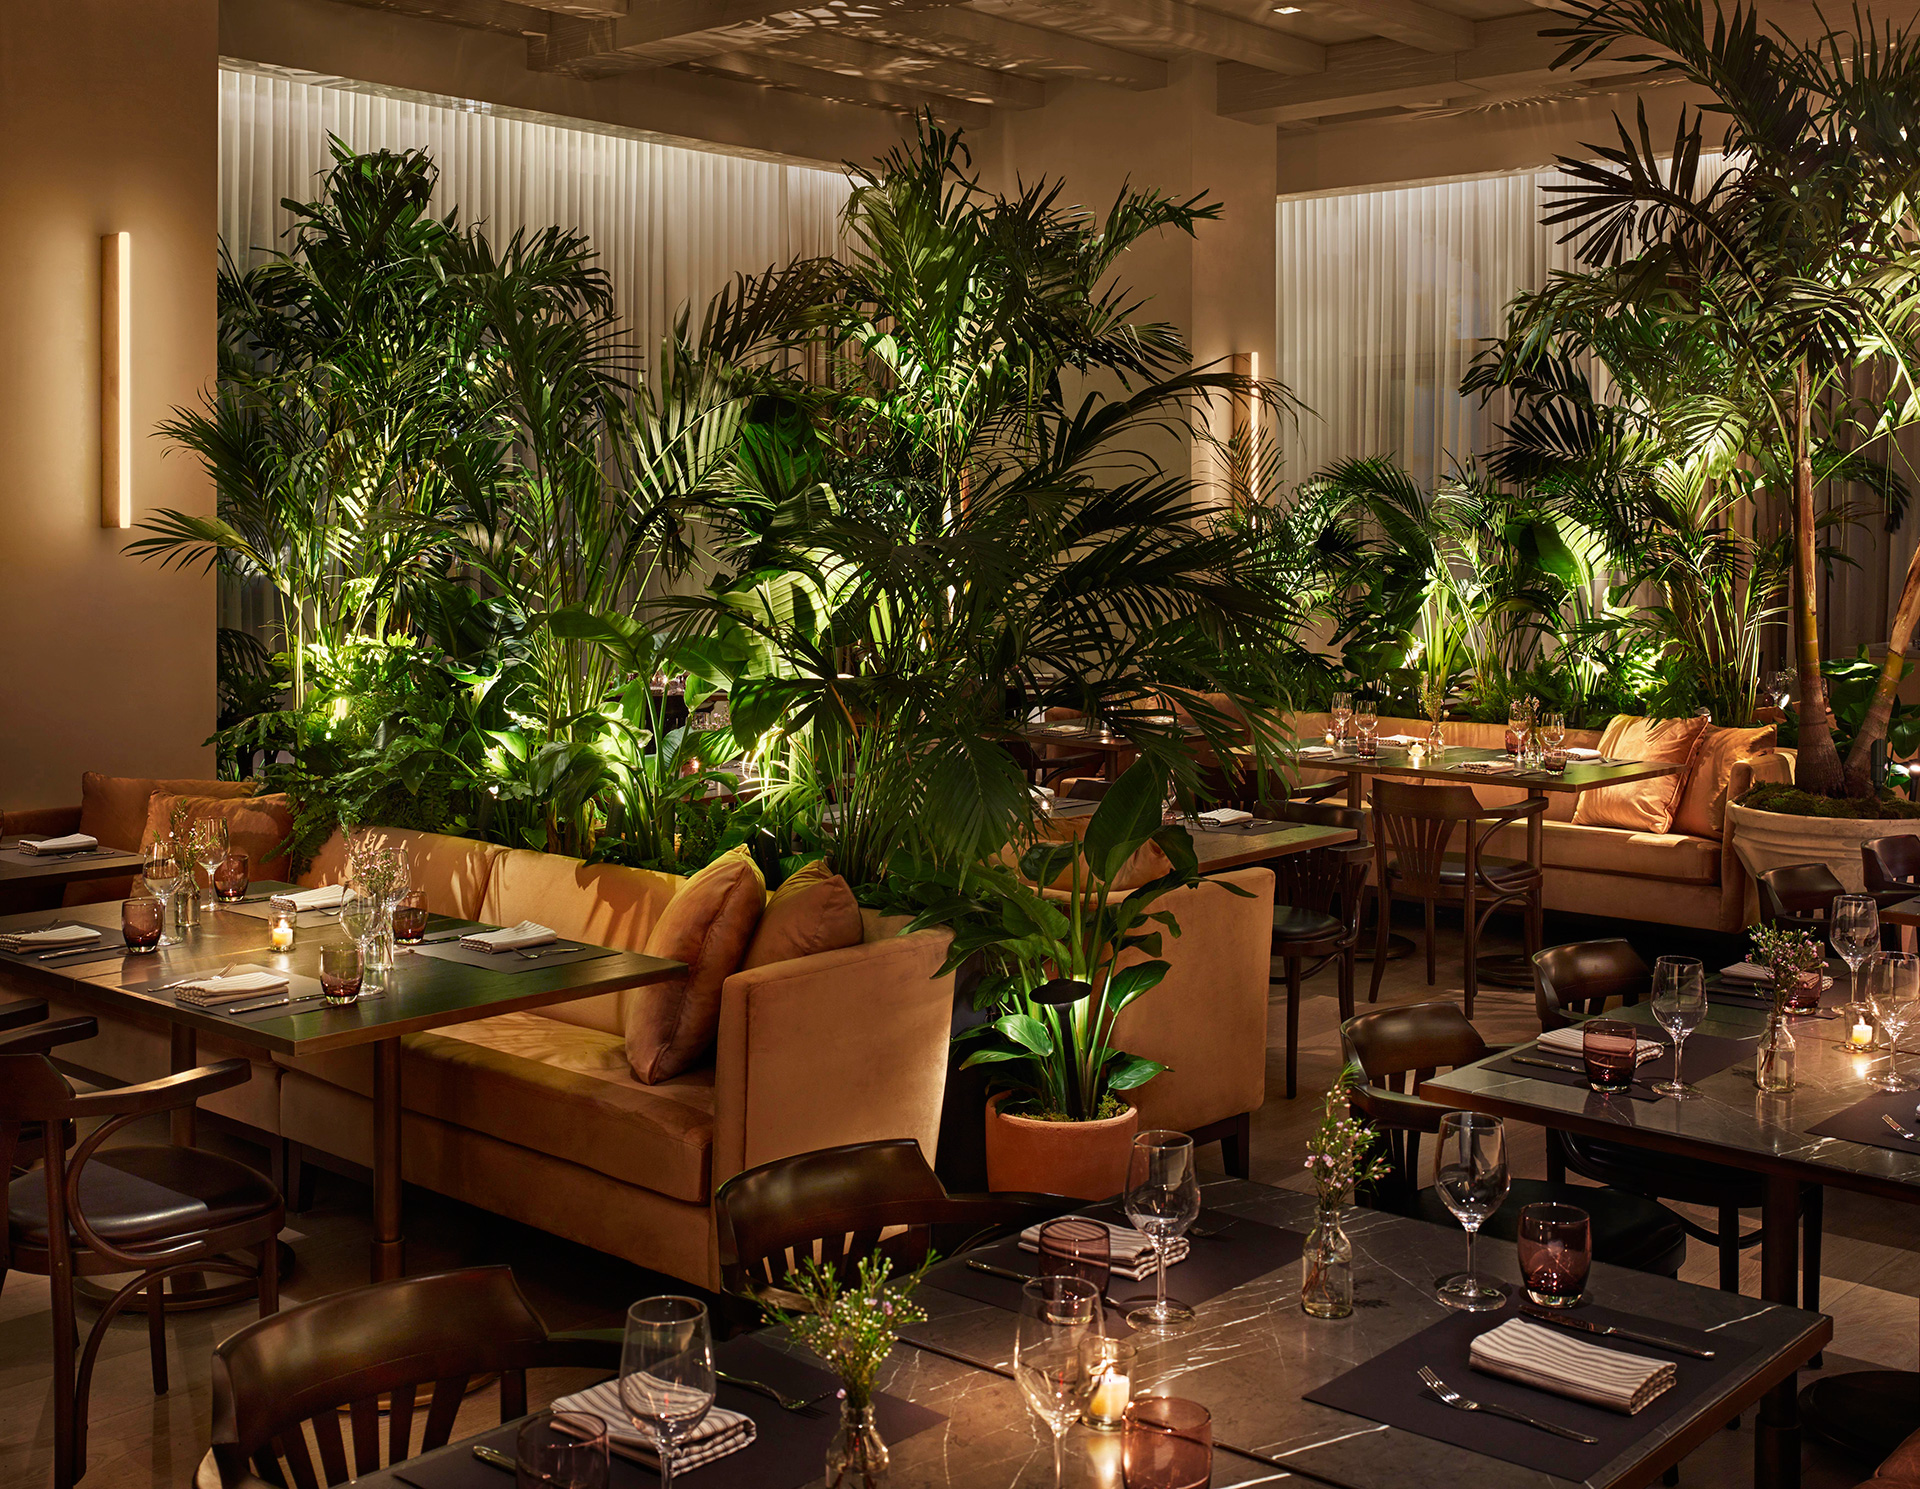 The terrace and outdoor gardens | Times Square Edition | Yabu-Pushelberg | Ian Schrager | STIRworld